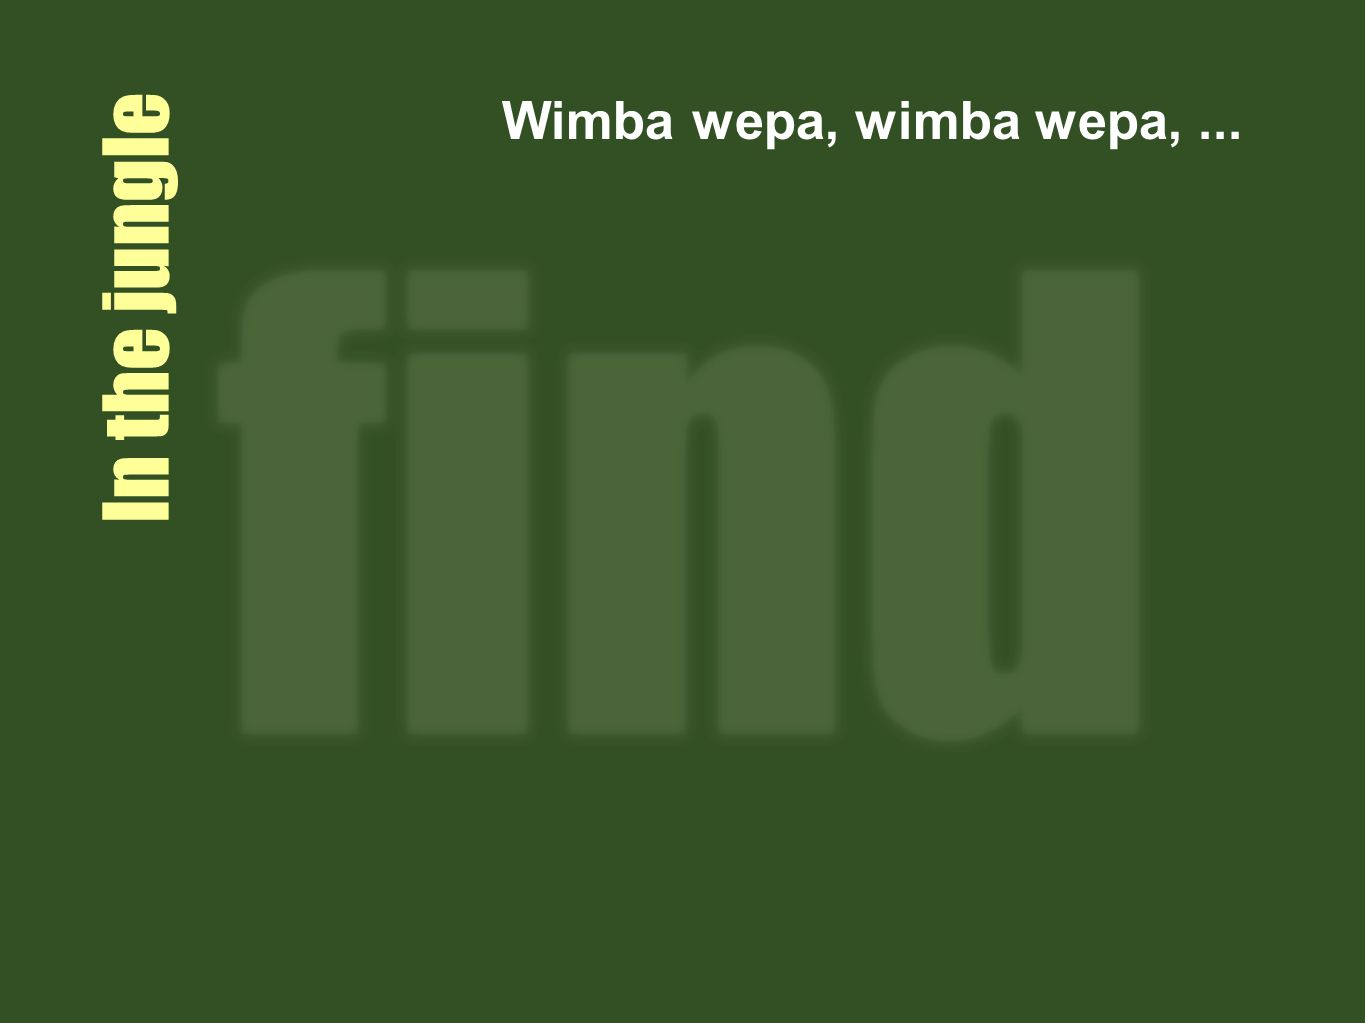 Wimba wepa, wimba wepa, ... In the jungle